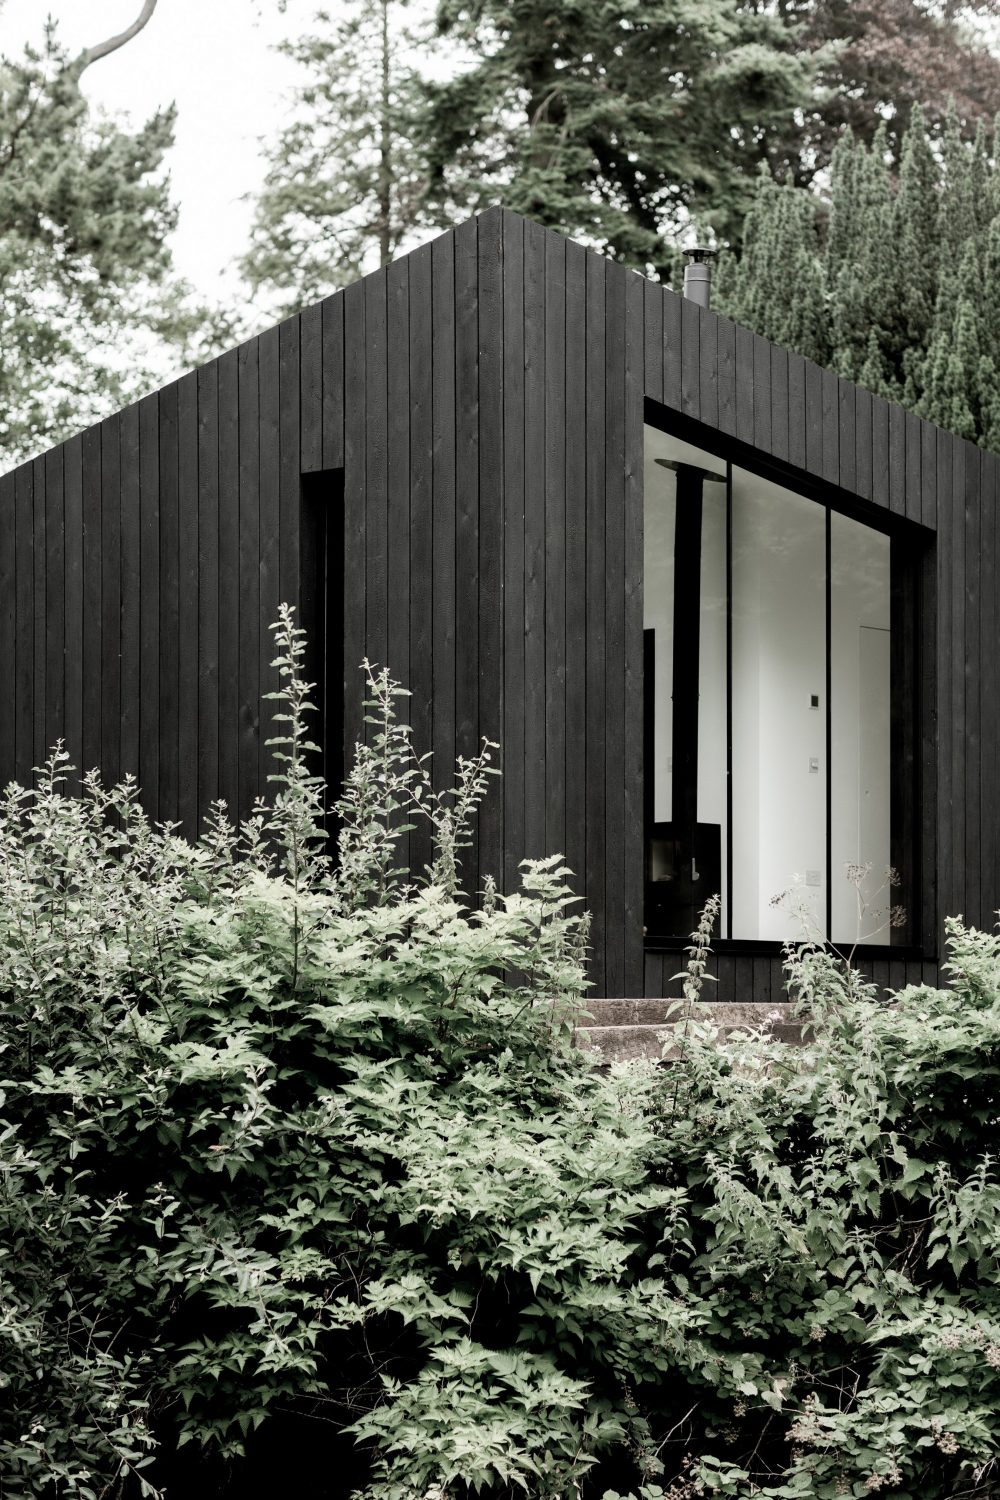 Scandinavian-Style Cabins | Prefab Cabins by Koto